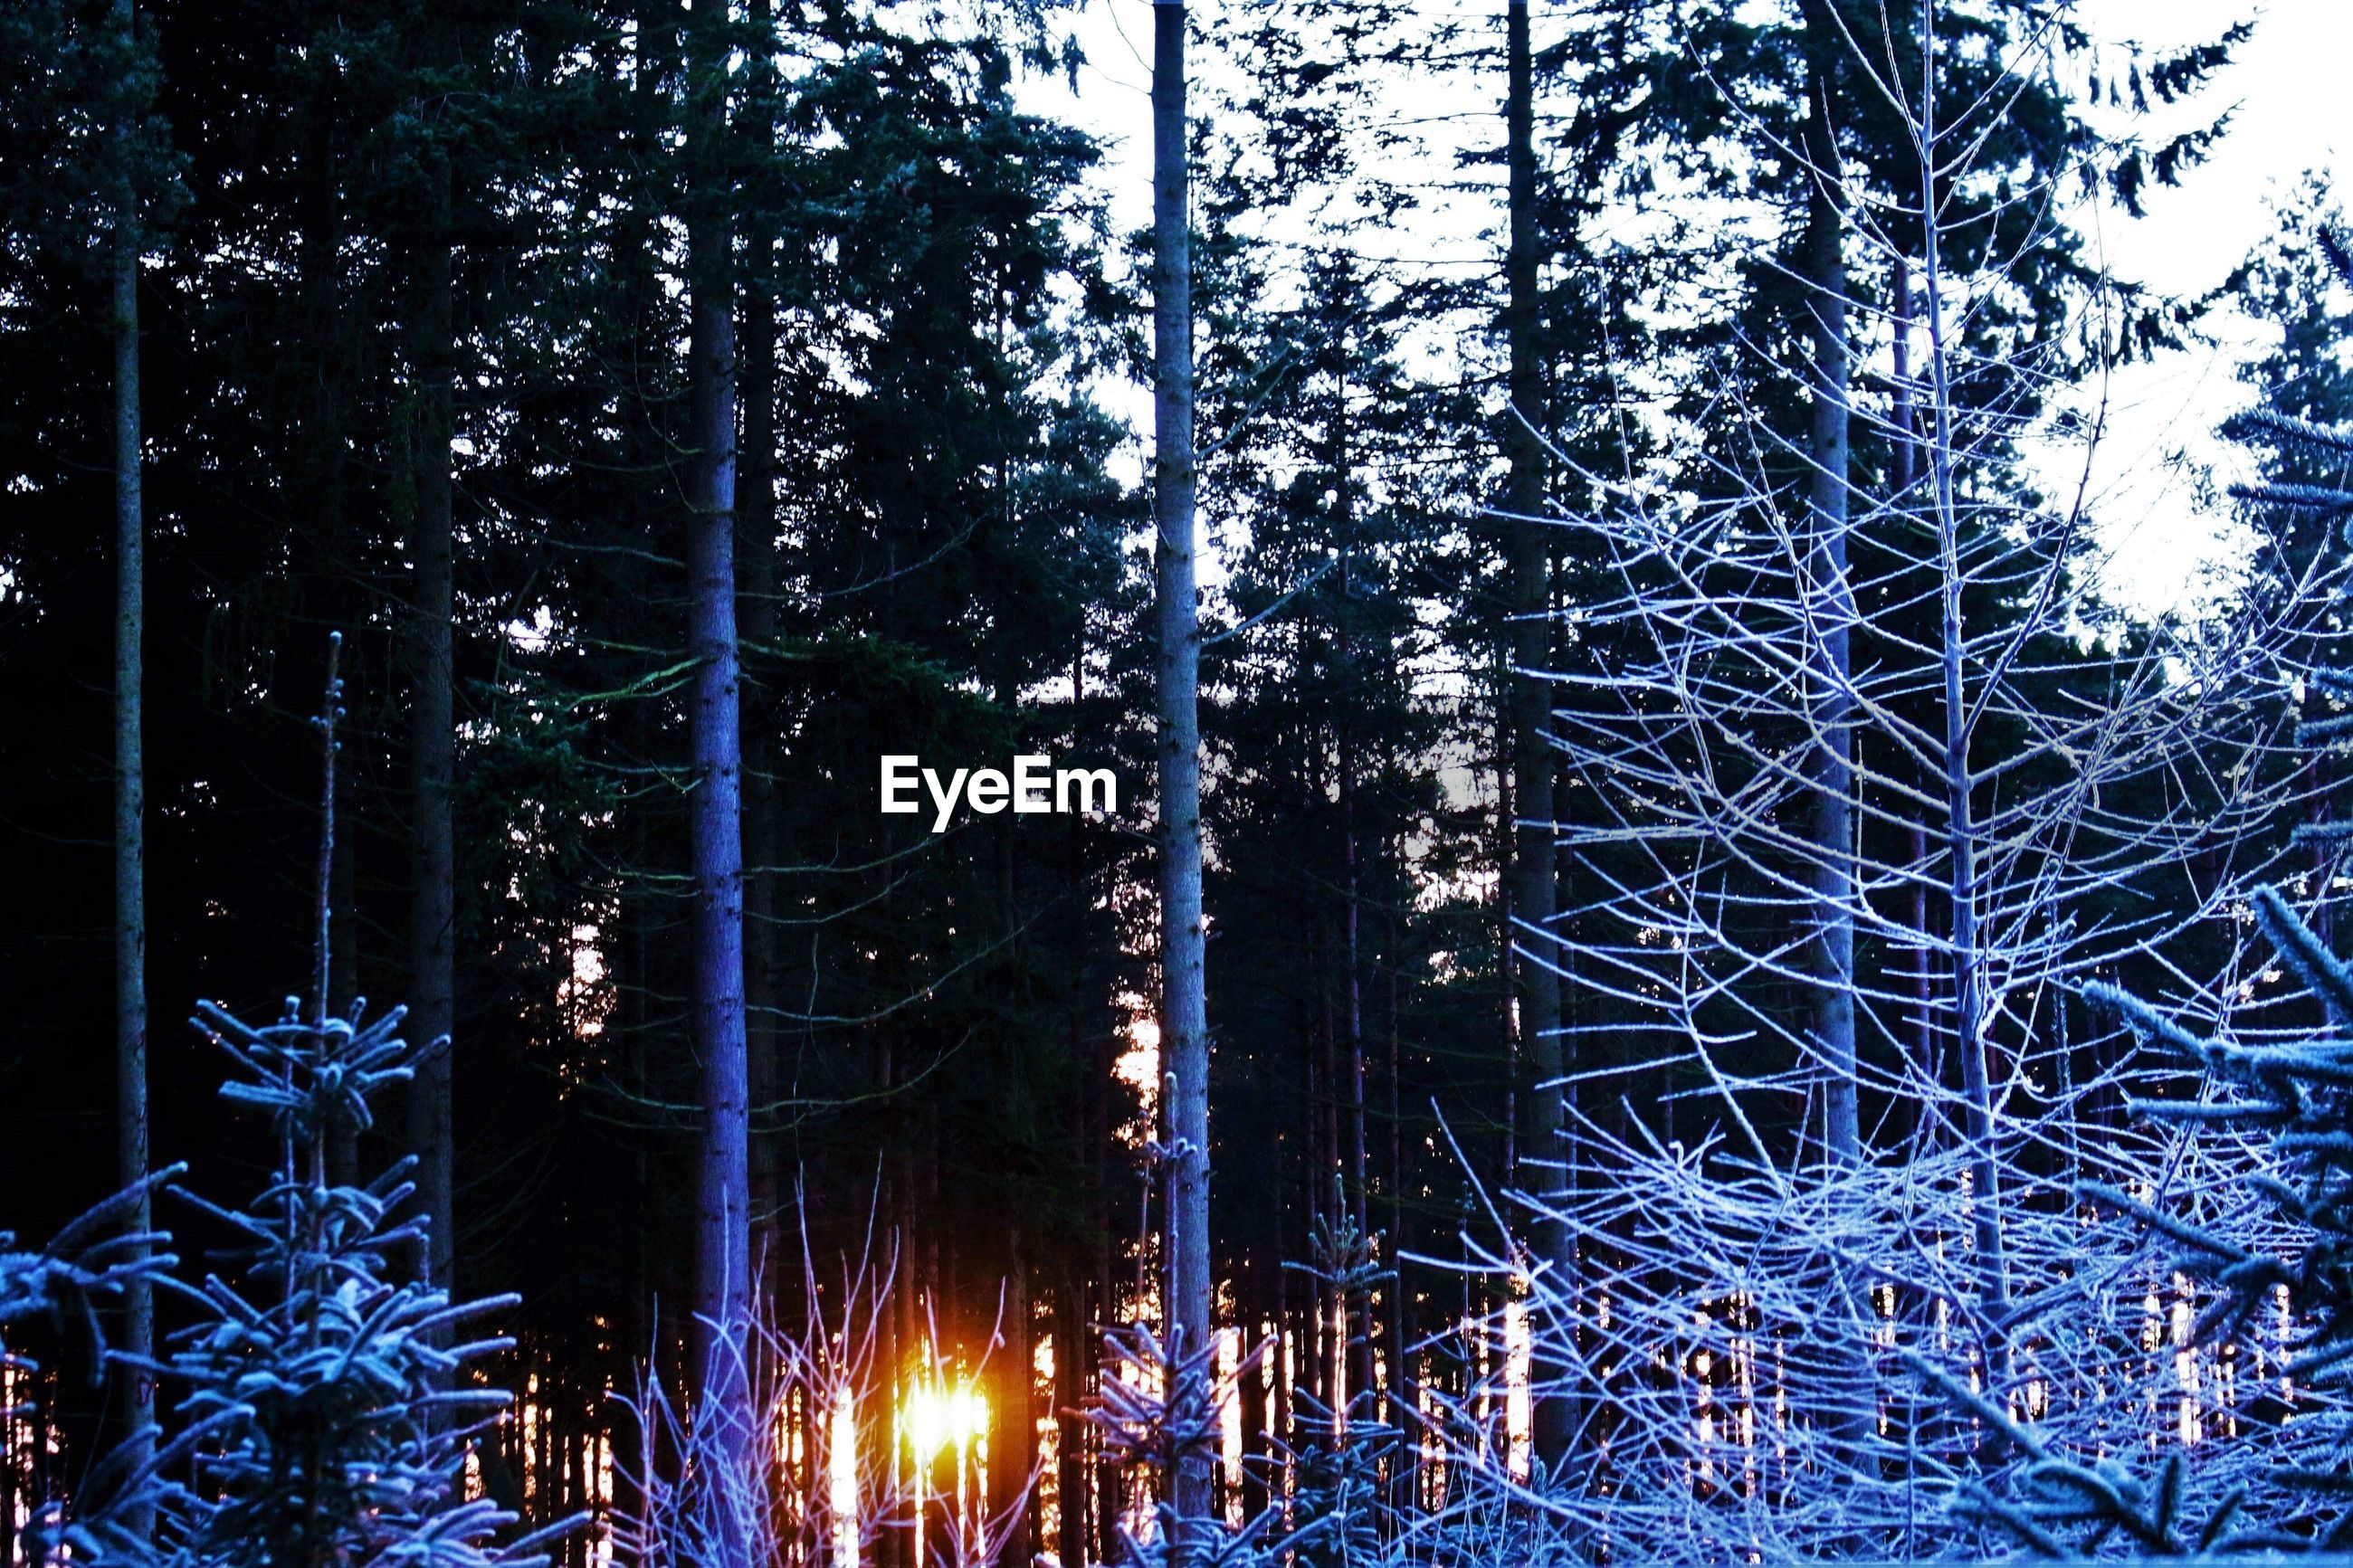 ILLUMINATED TREES IN FOREST DURING WINTER